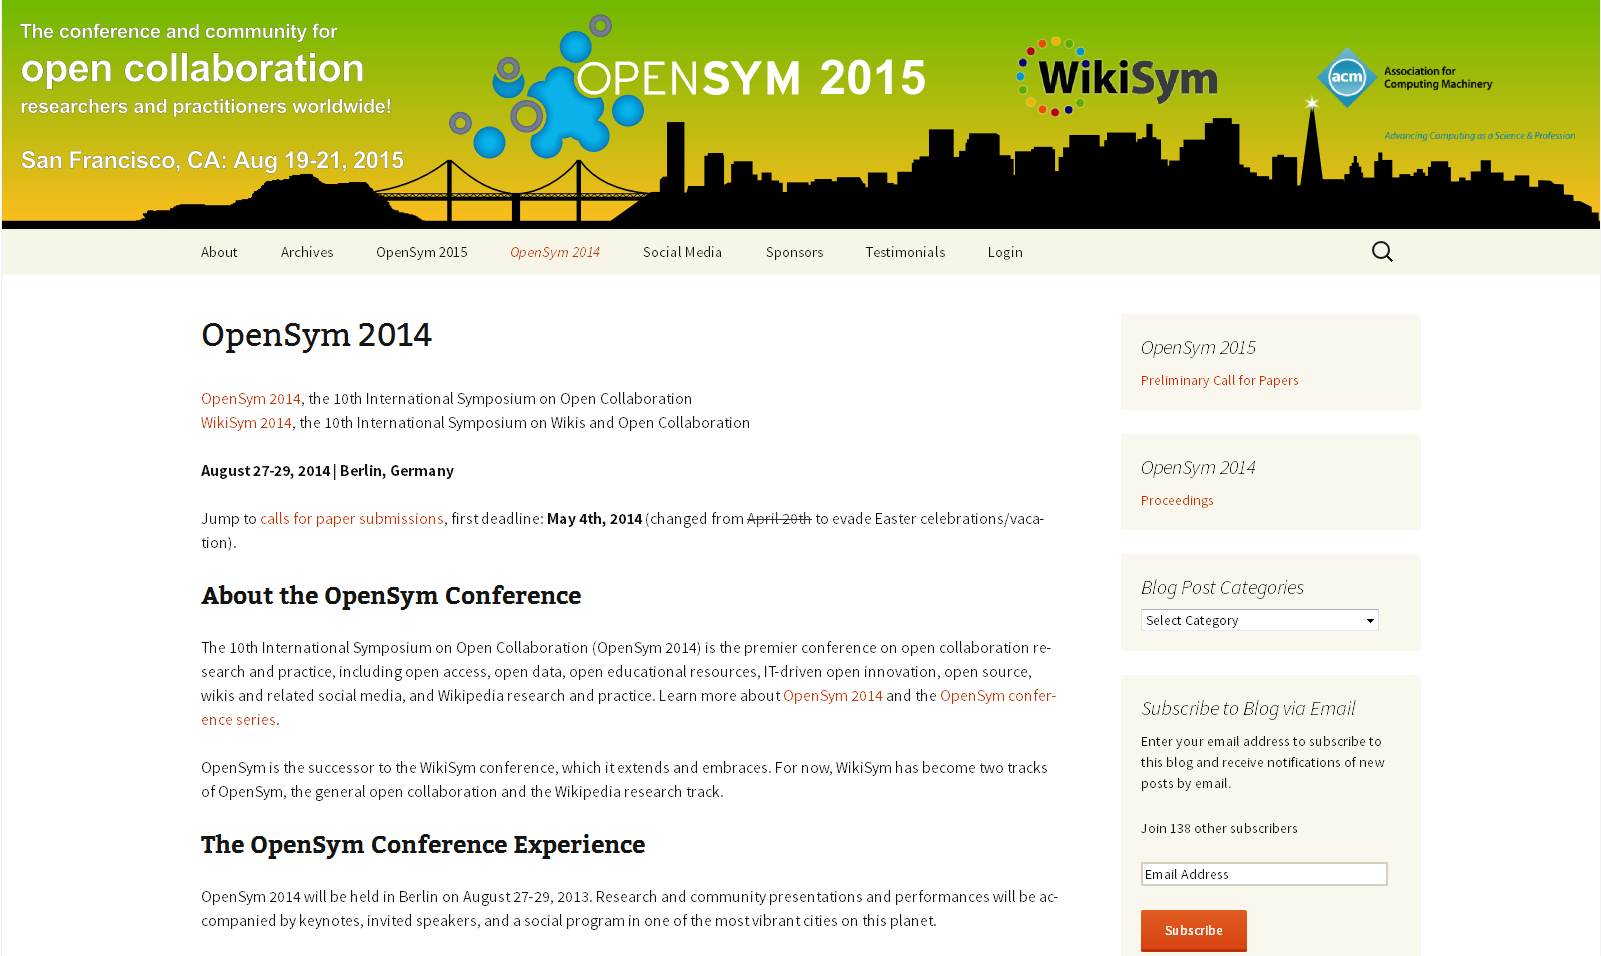 OPENSYM 2014 - 10th International Symposium on Open Collaboration